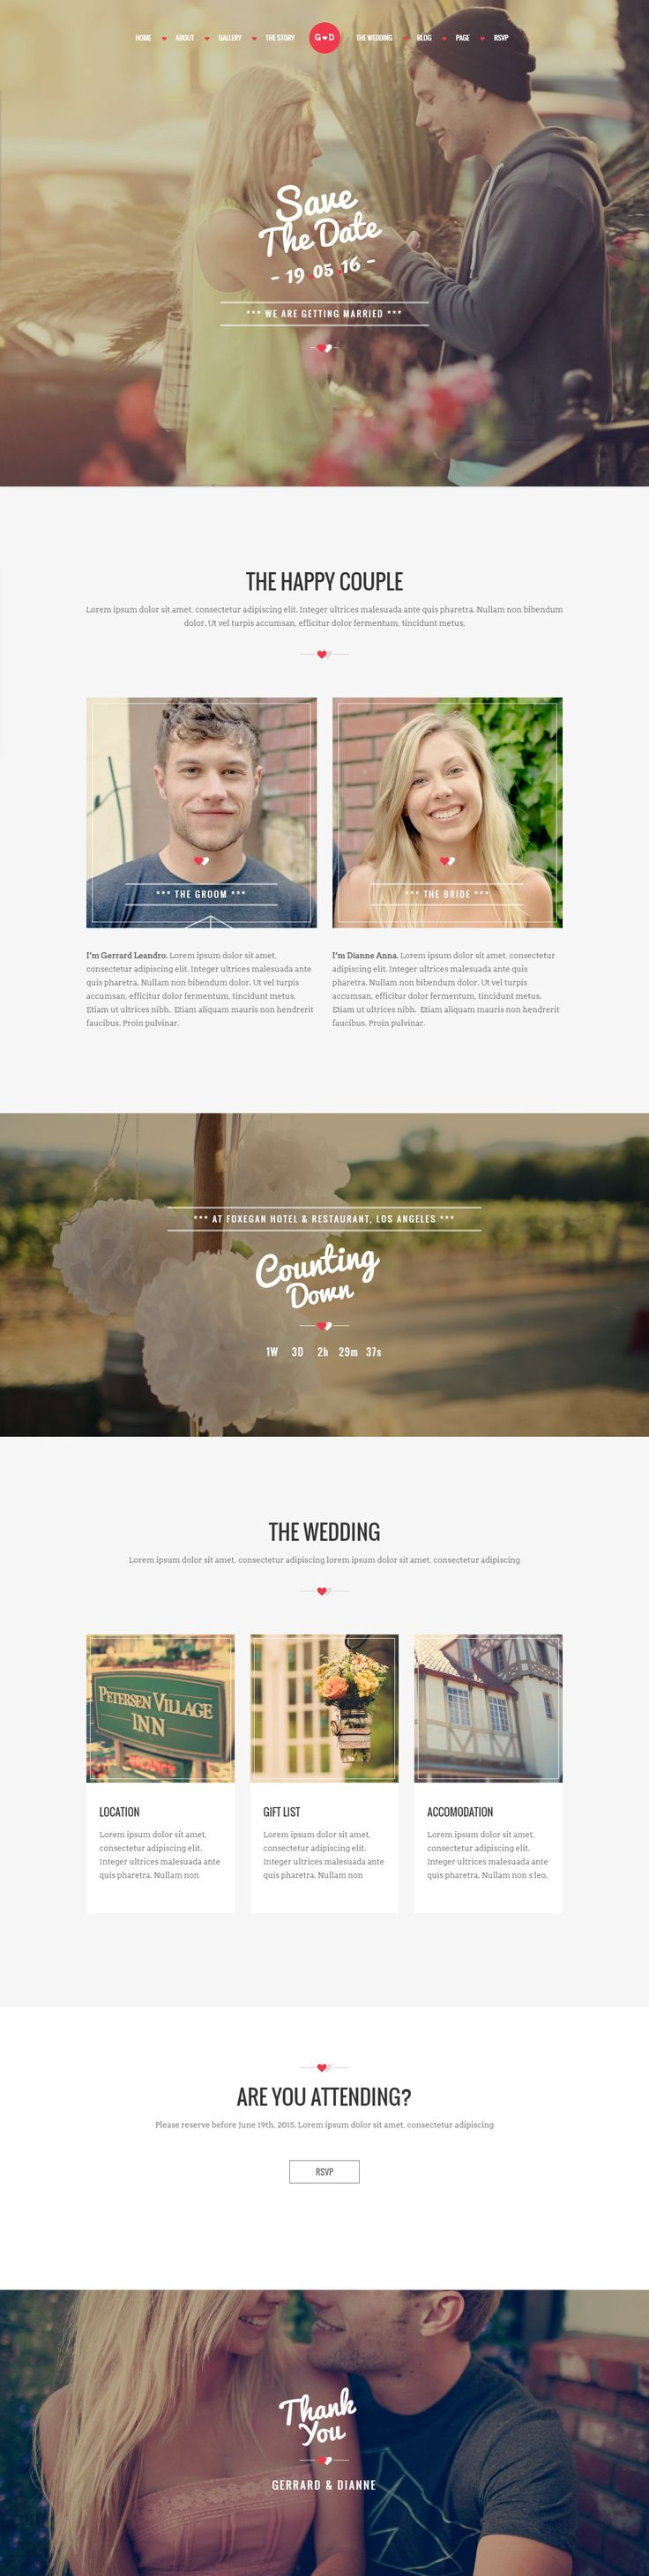 WP Forever is Premium Responsive Retina Parallax #WordPress #Wedding #Theme. Bootstrap 3. One Page. Visual Composer. Google Map. Test free demo at: http://www.responsivemiracle.com/wp-forever-premium-responsive-wordpress-wedding-theme/